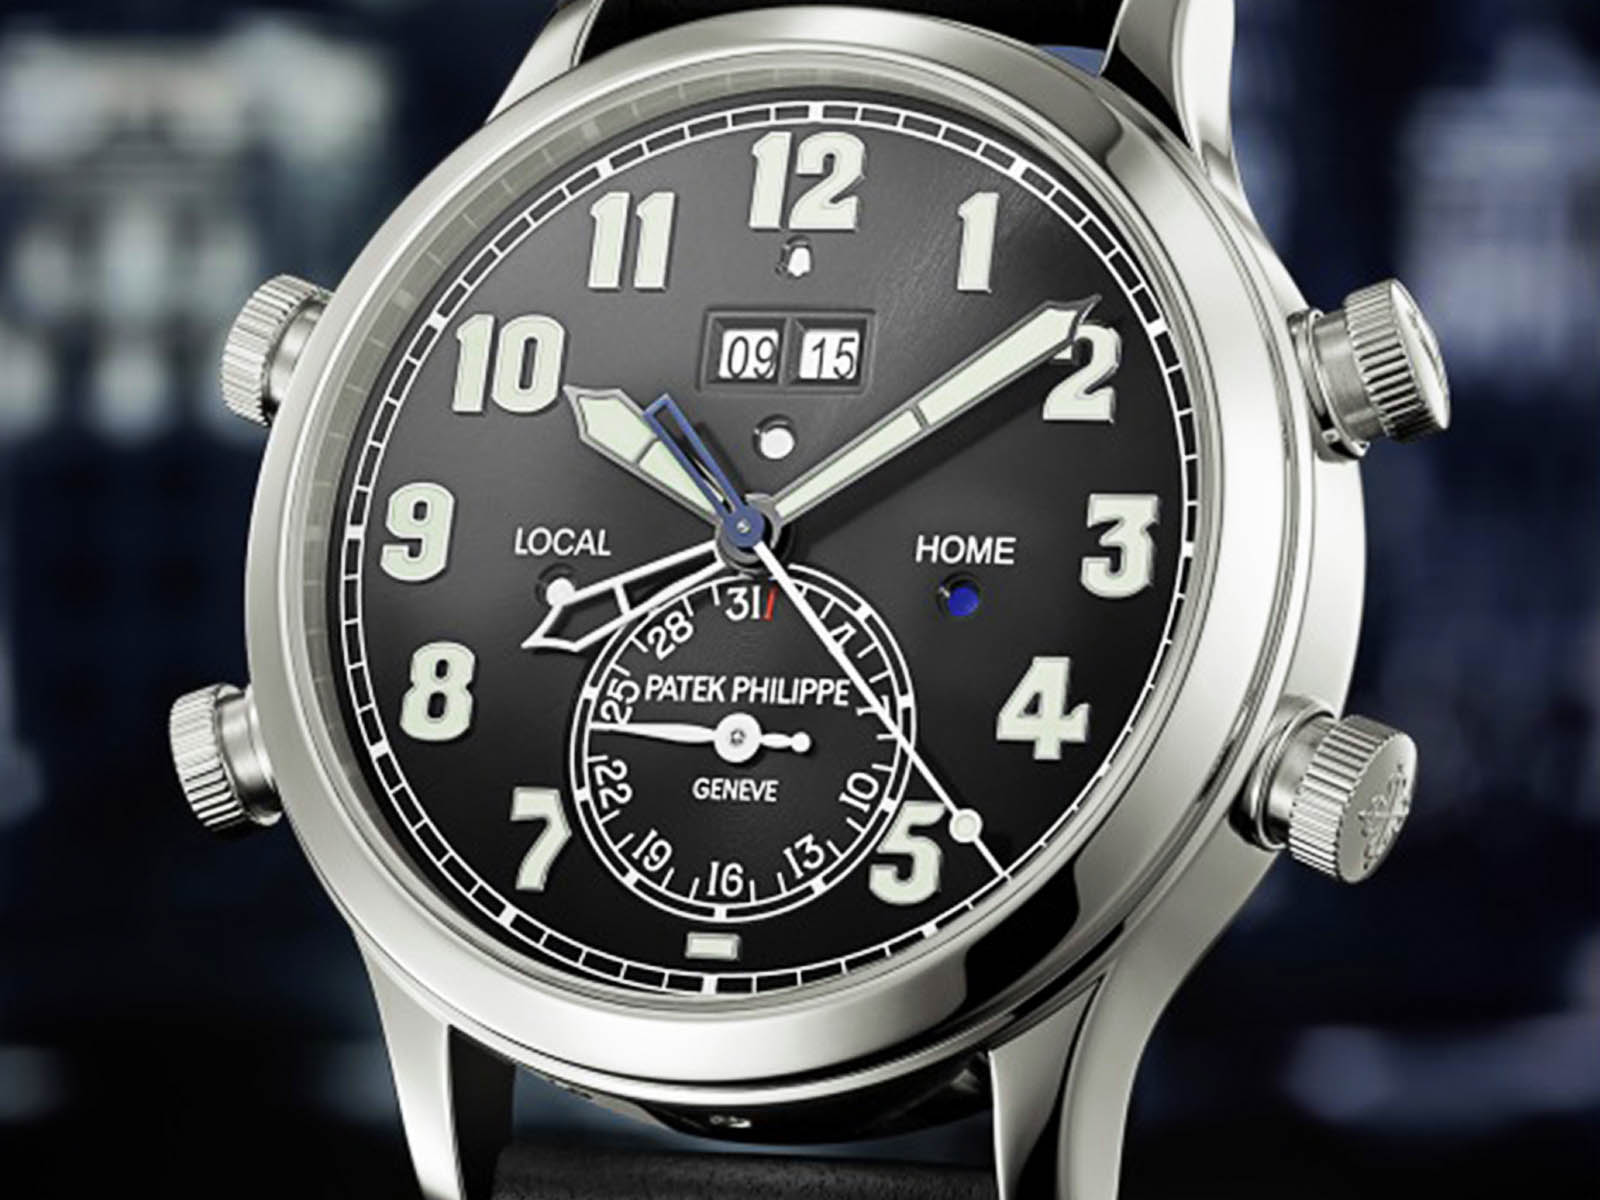 5520p-001-patek-philippe-5520p-alarm-travel-time-1.jpg